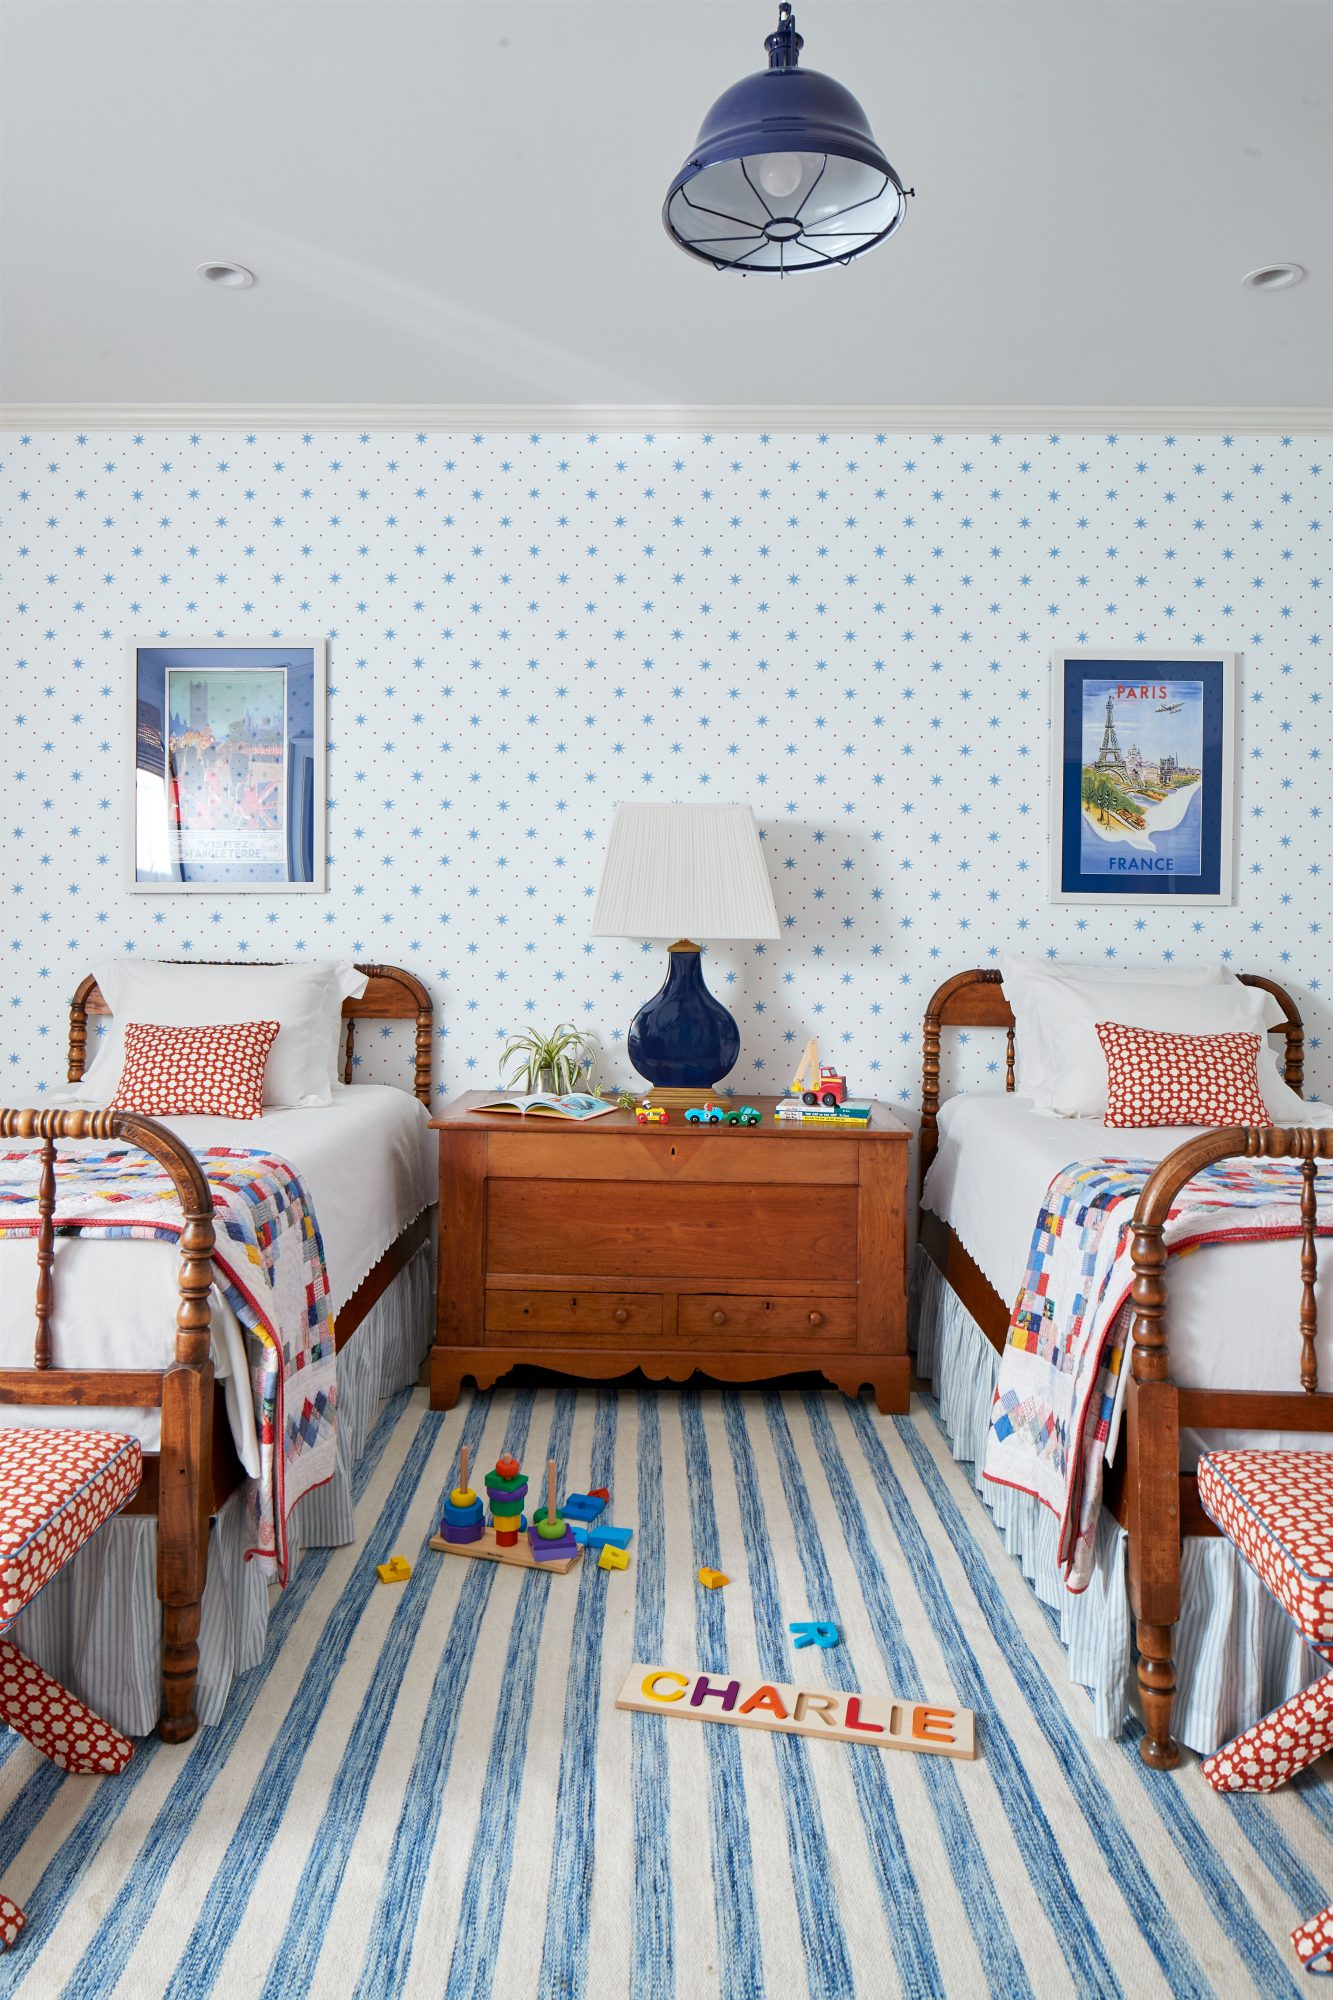 Child's Bedroom in Basement of Mountain House with Blue and White Striped Rug